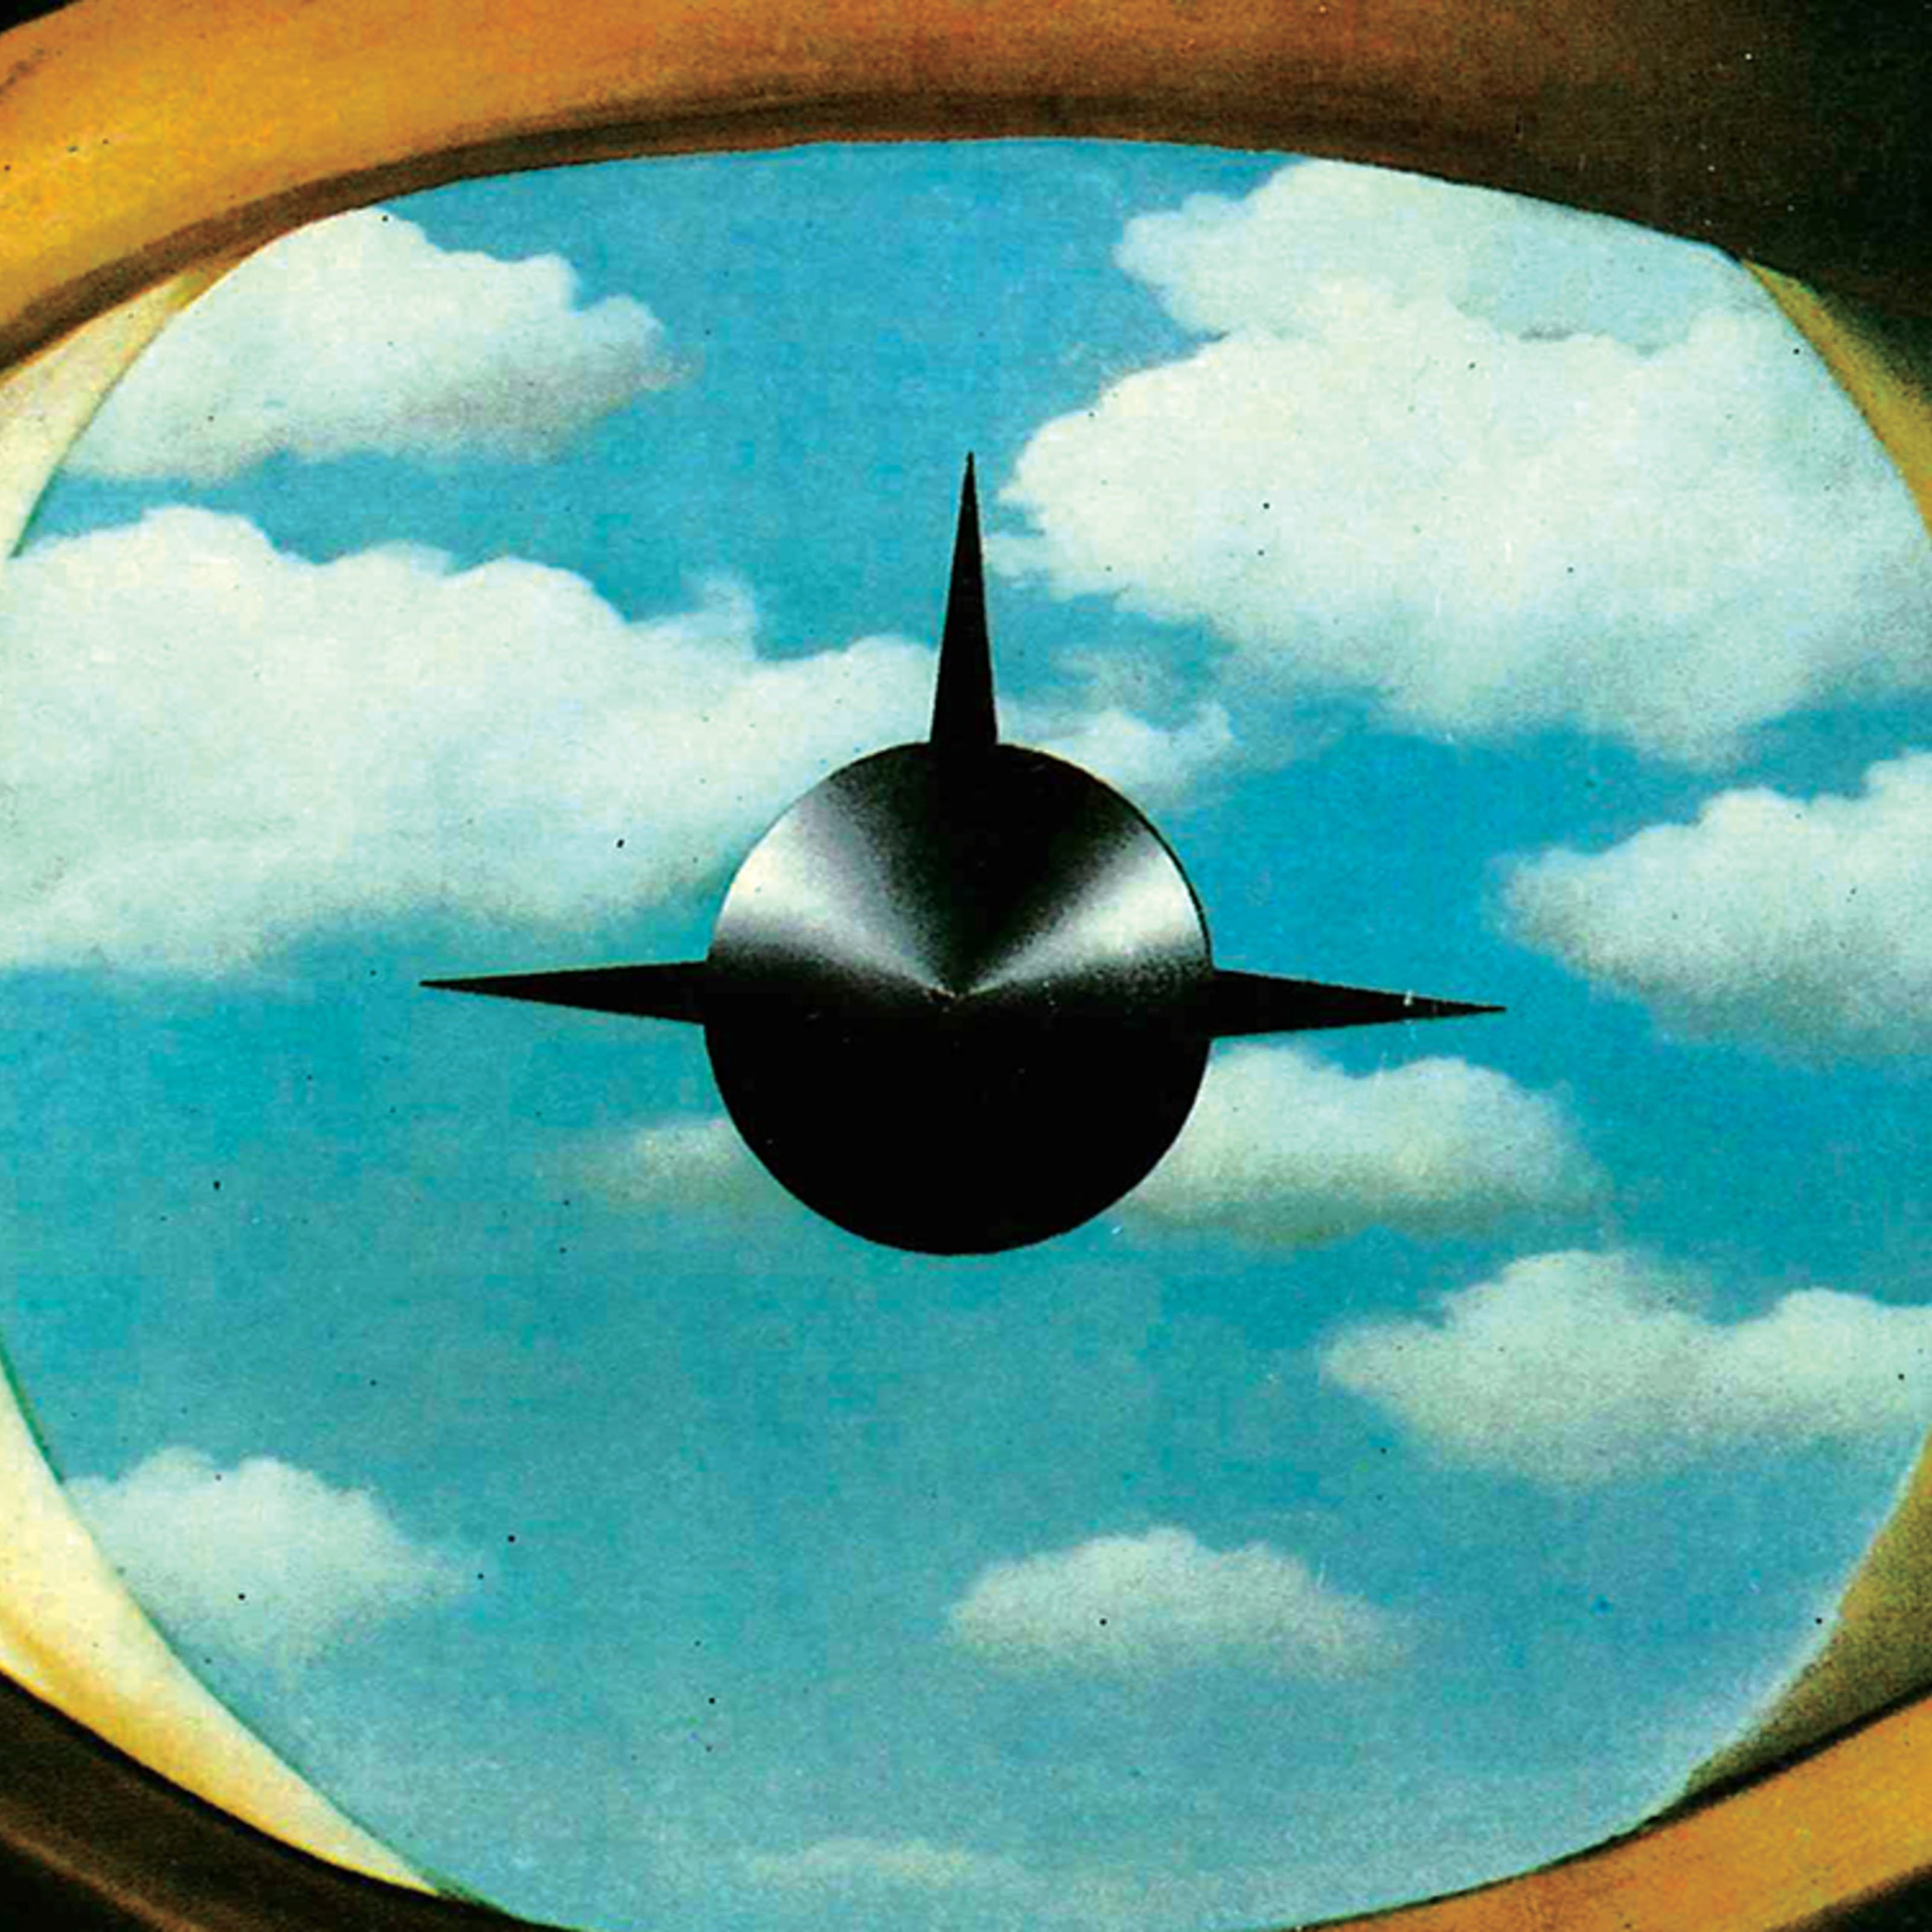 A human eye within which there is sky, and the image of a missile